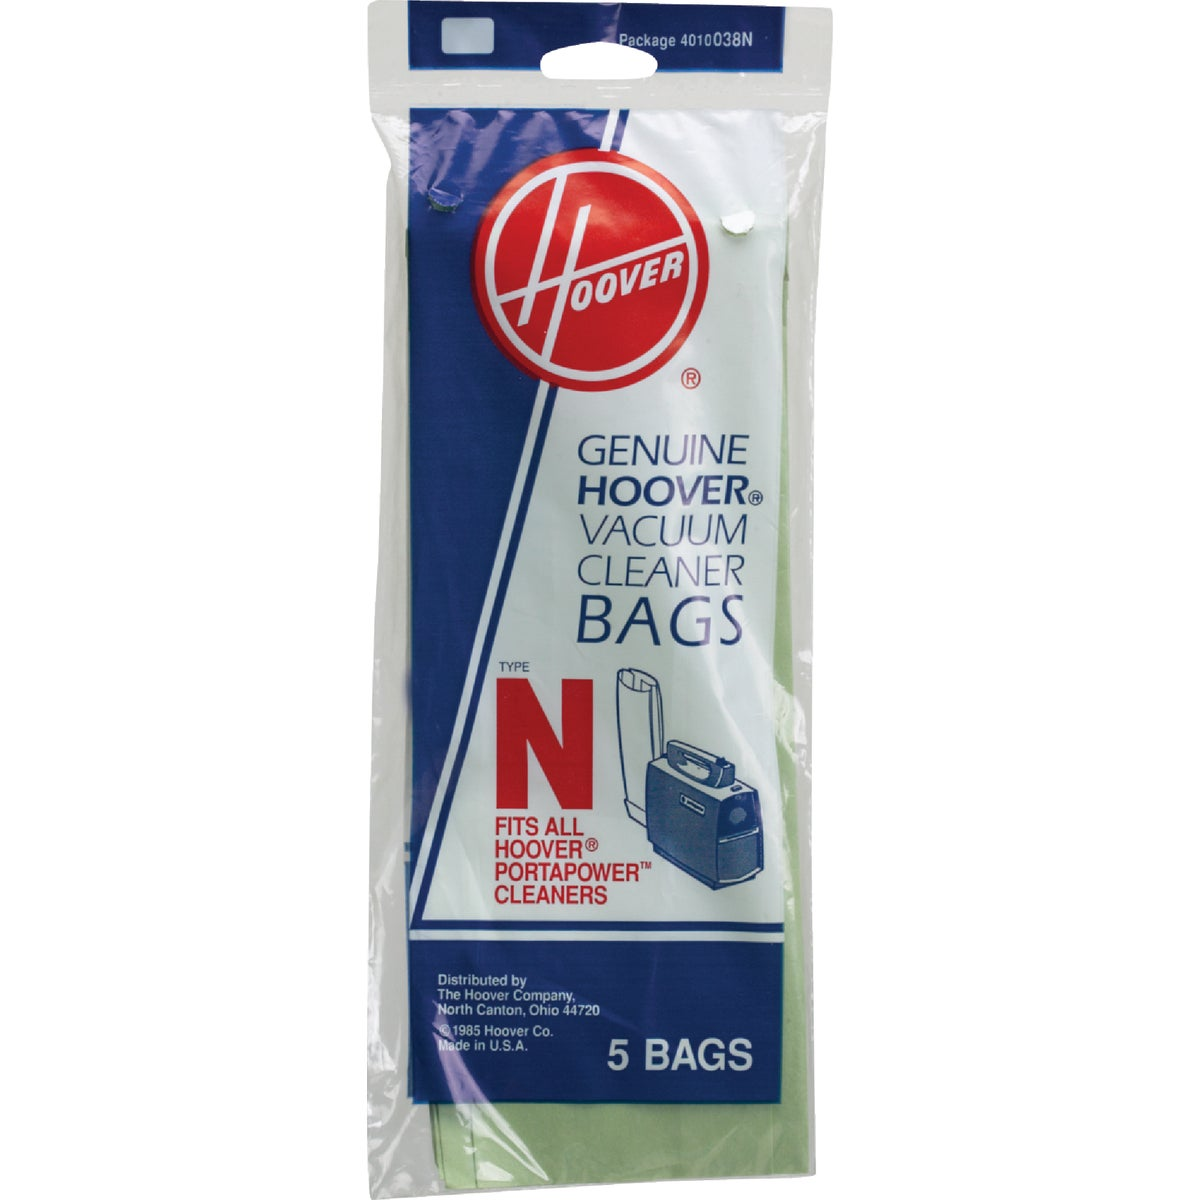 TYPE N VAC CLEANER BAG - 4010038N by Hoover Co